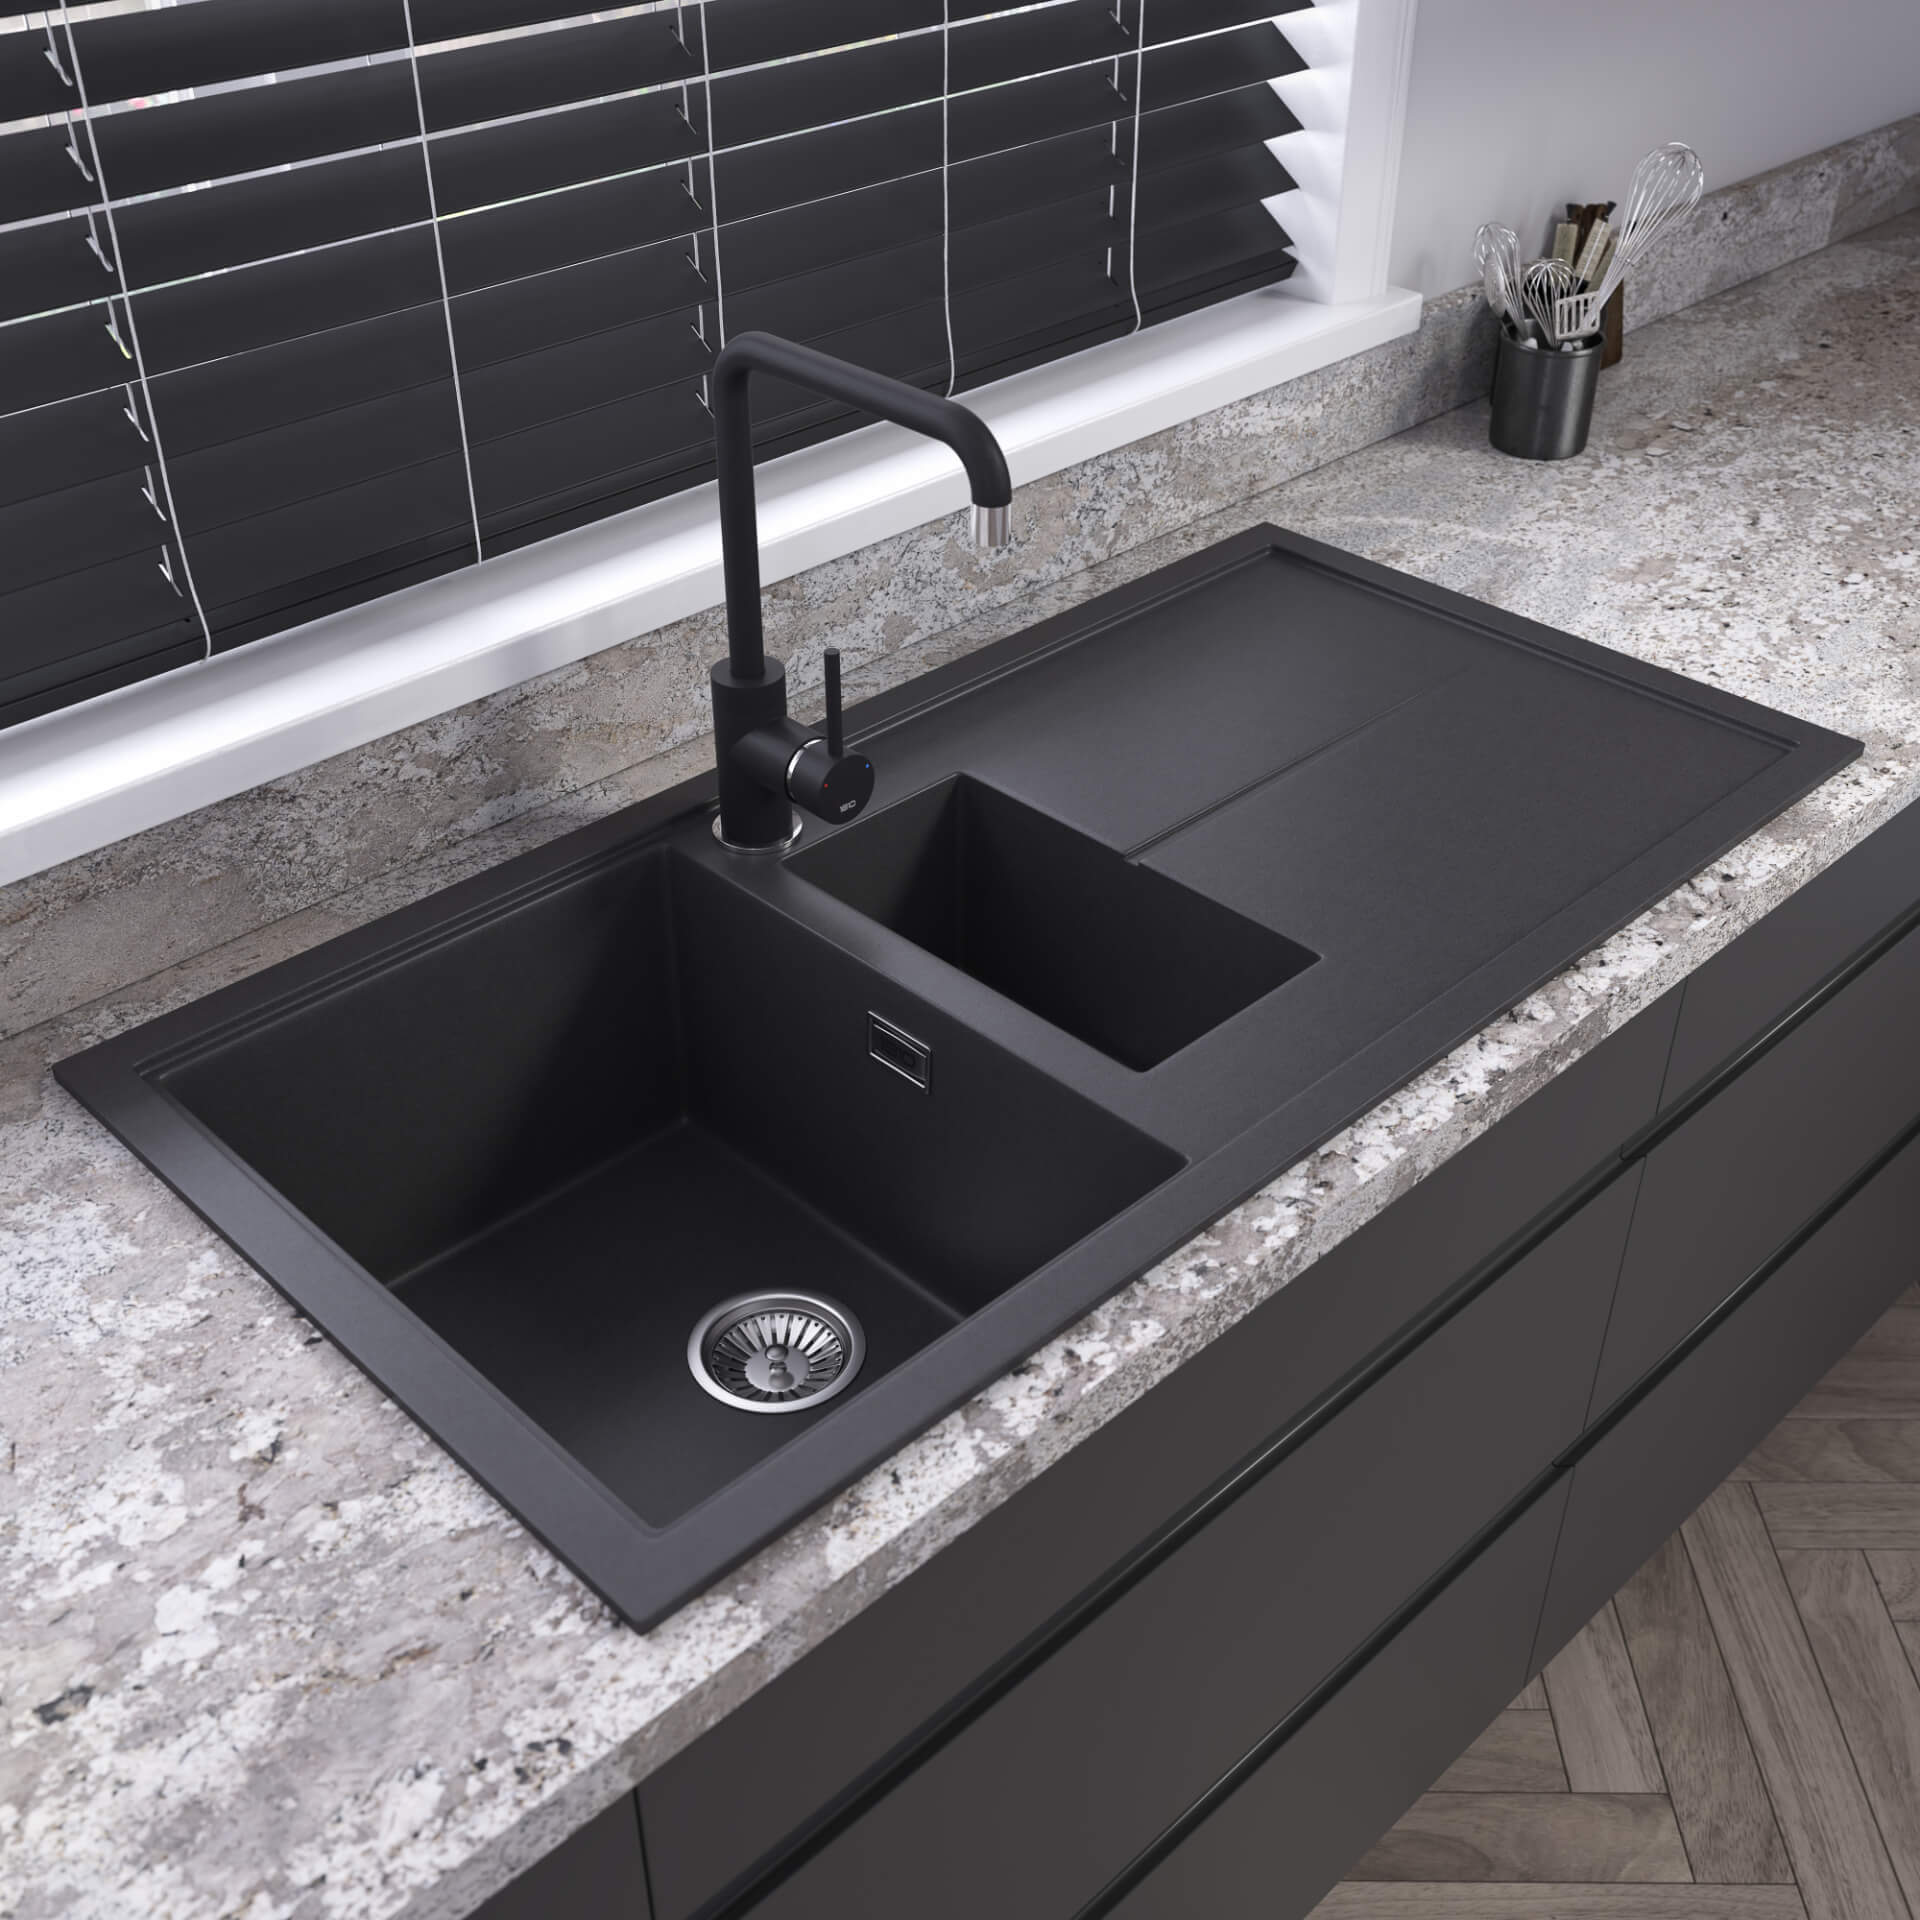 The 1810 Company Black Tap And Sink